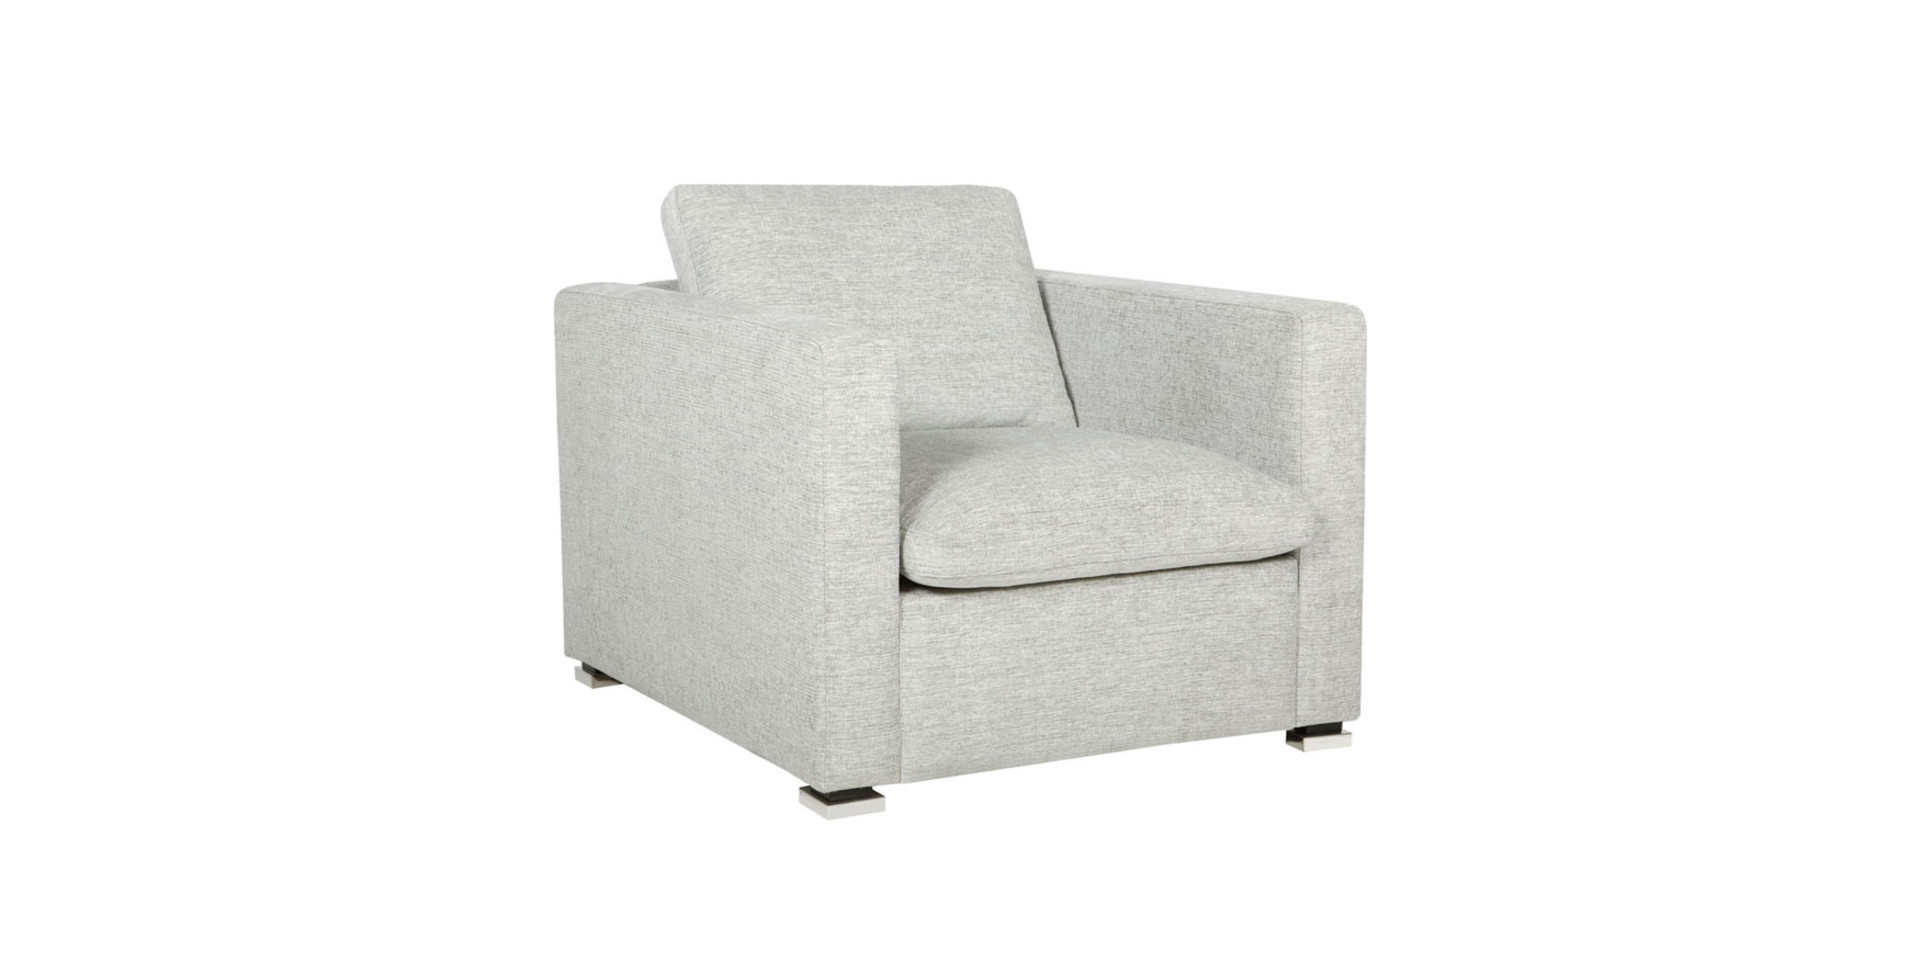 sits-vario-fauteuil-armchair_divine50_light_grey_2_0